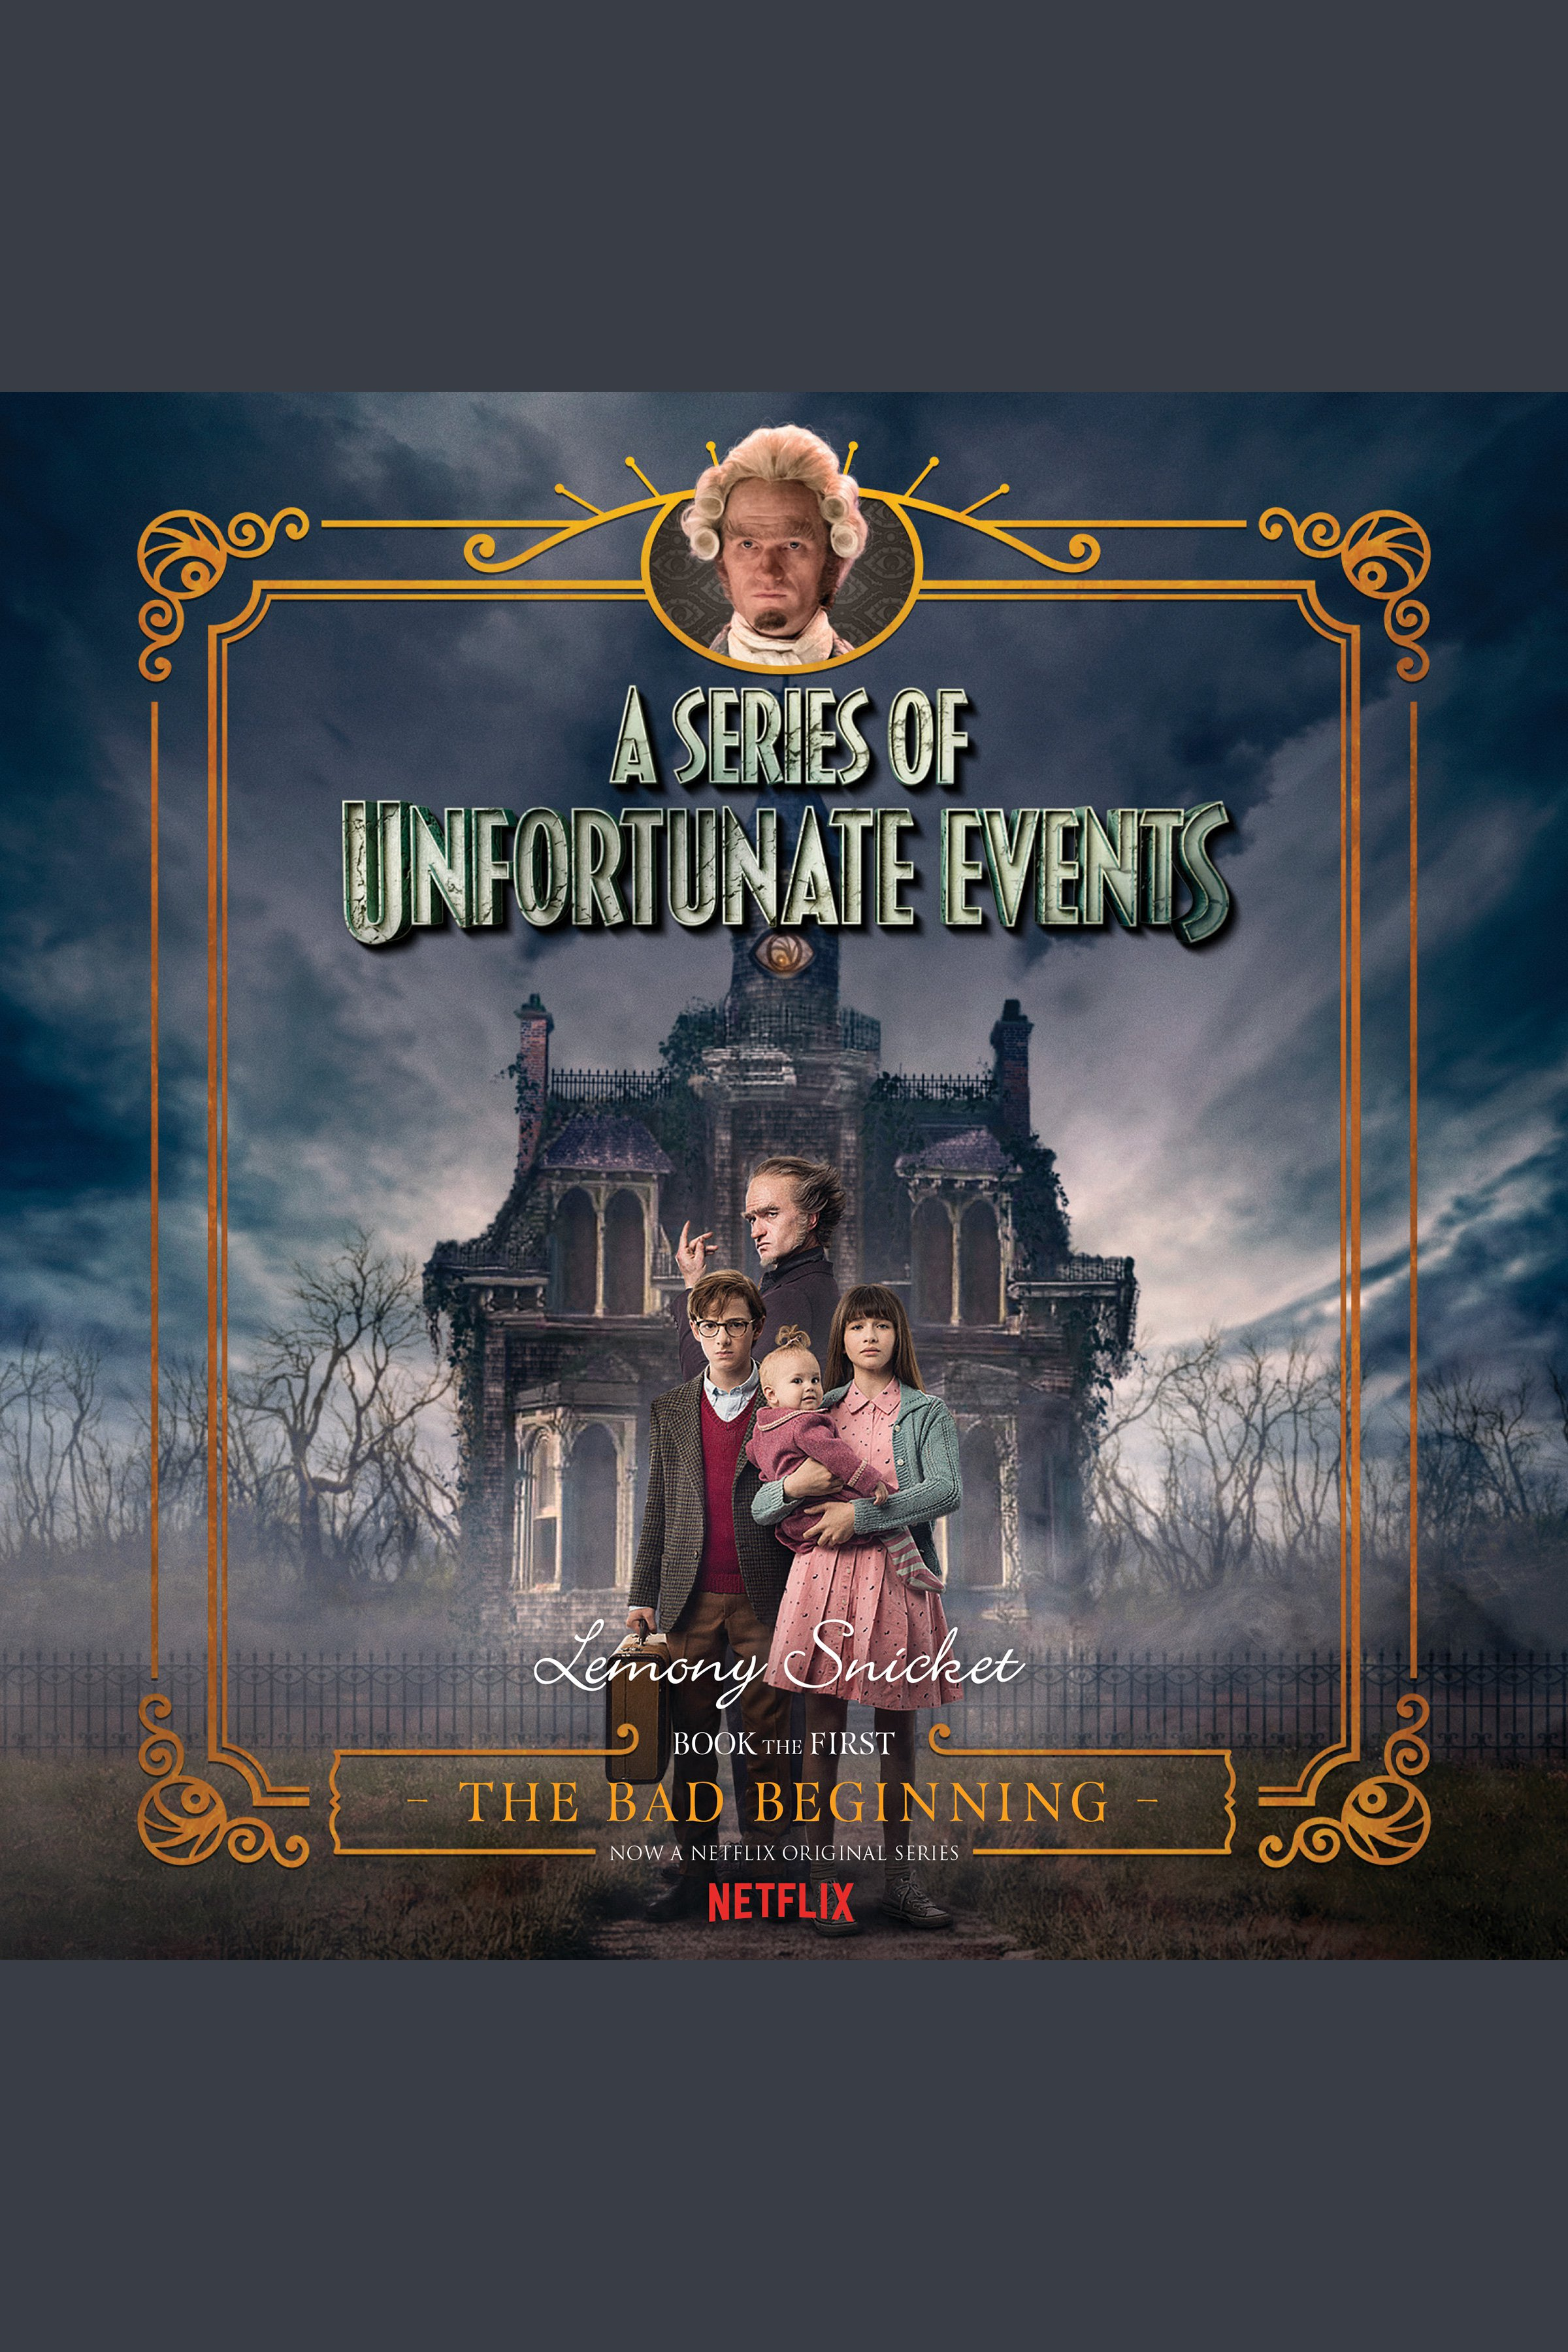 The Bad Beginning A Series of Unfortunate Events #1